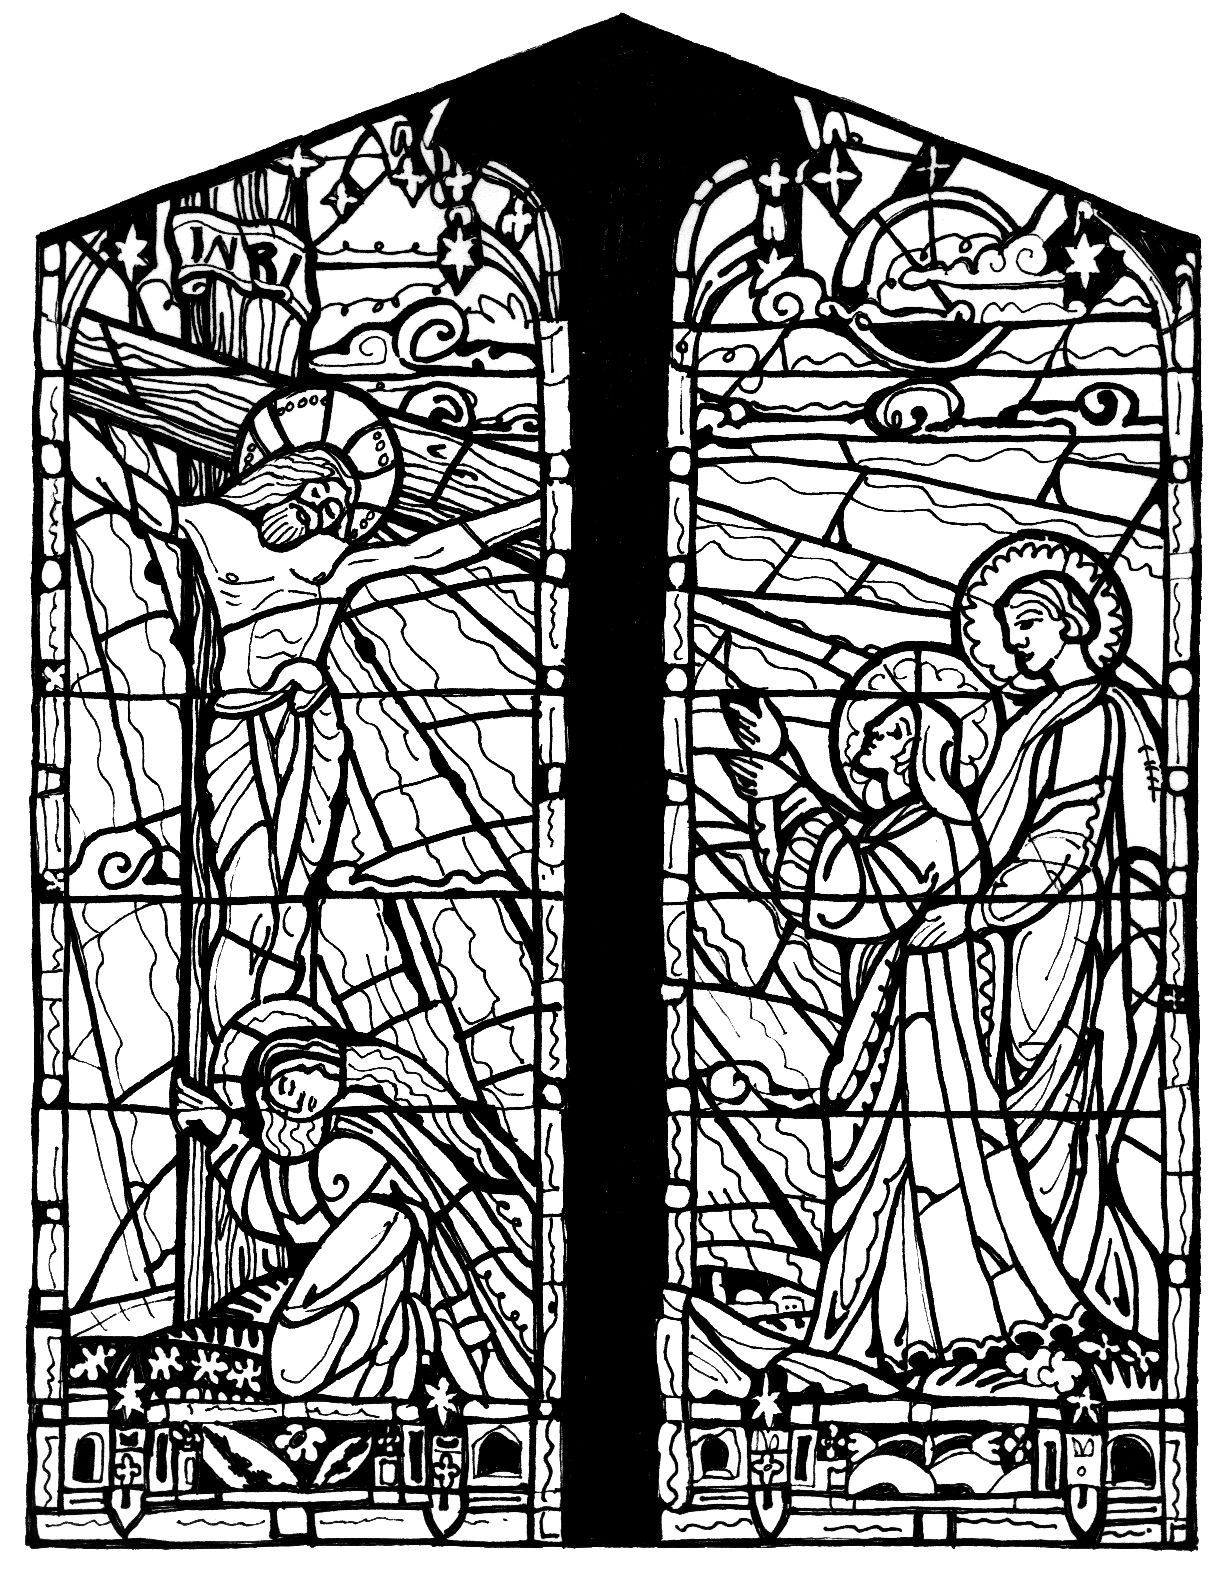 Adult Cute Christmas Stained Glass Coloring Pages Images best stained glass christmas coloring pages jamesenye 1000 images about catholic sheets on pinterest gallery images